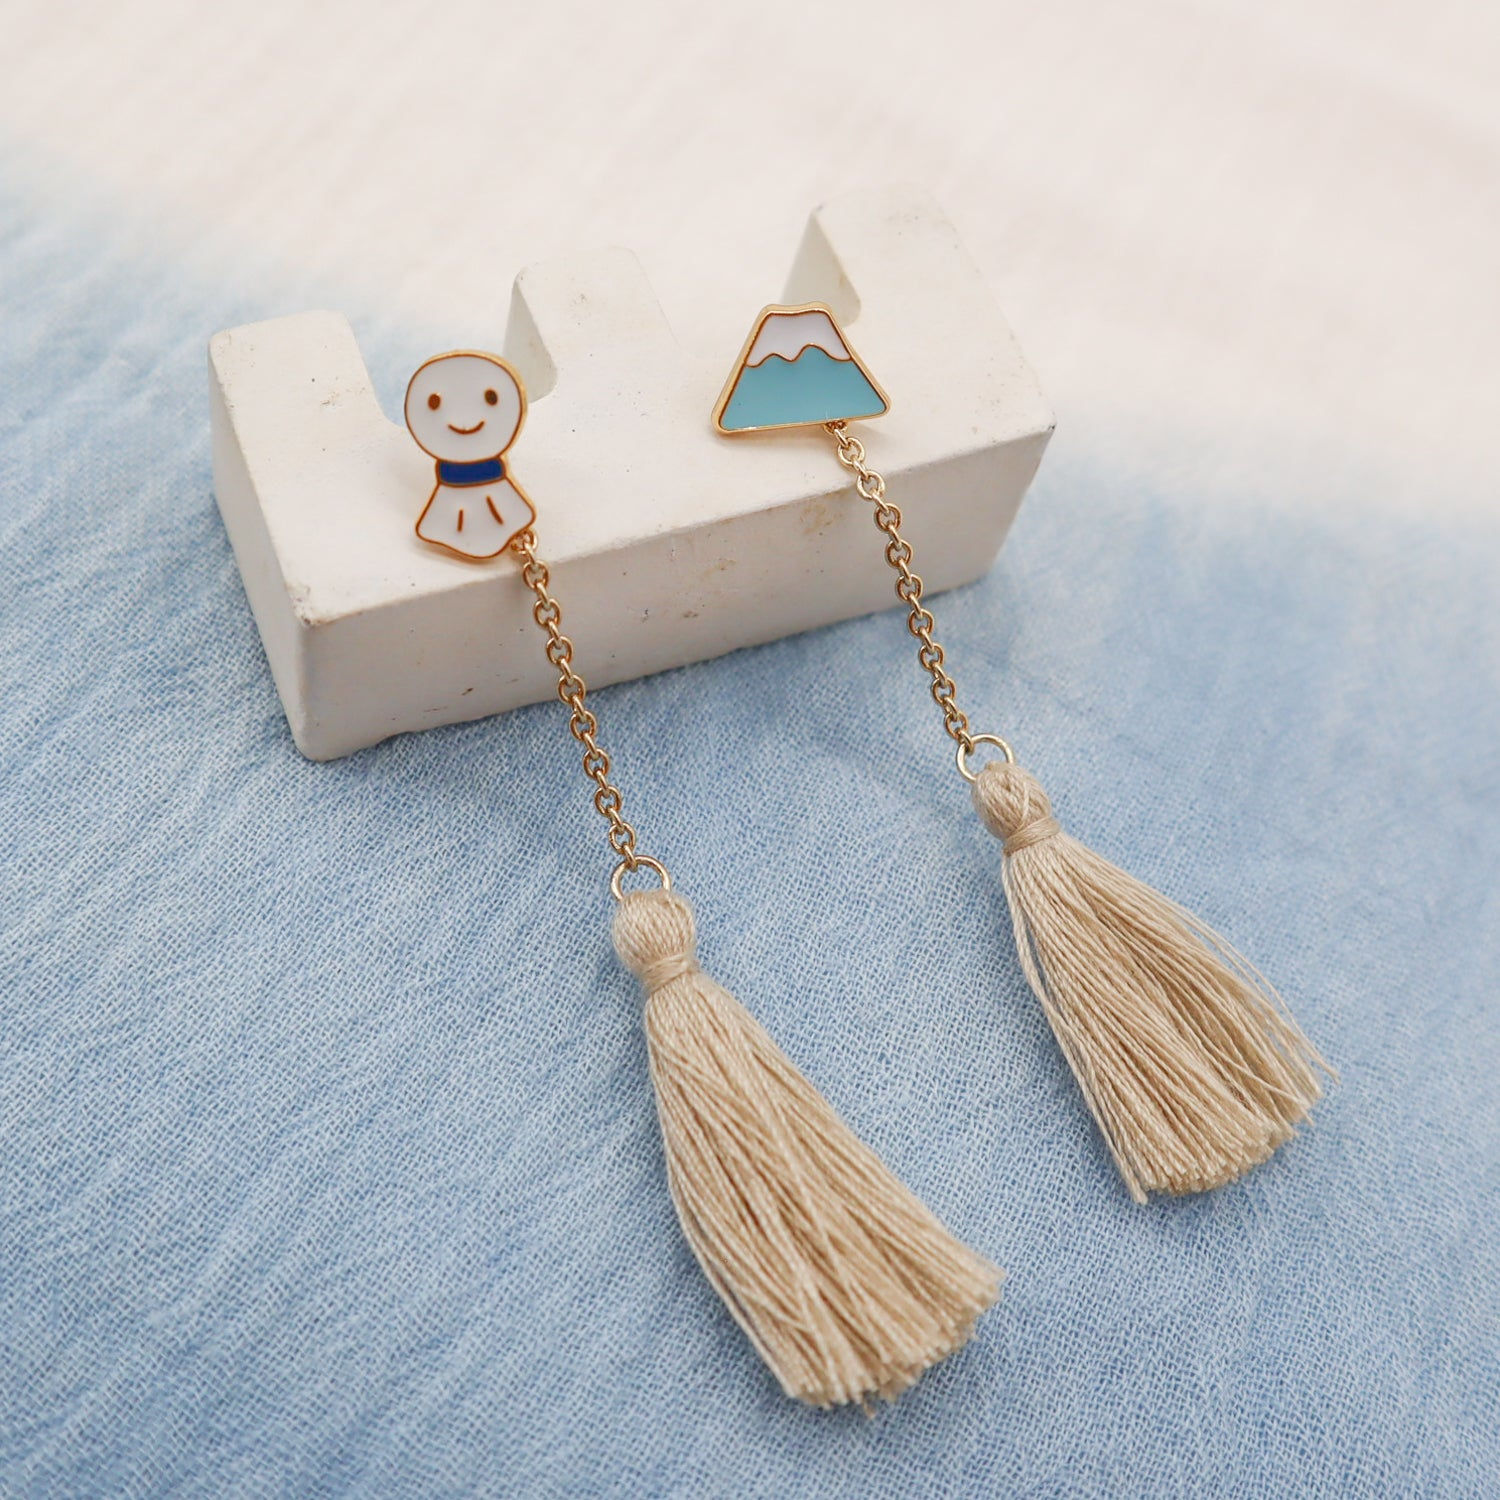 Japan Impression Mismatched Enamel Stud Earrings with Tassels